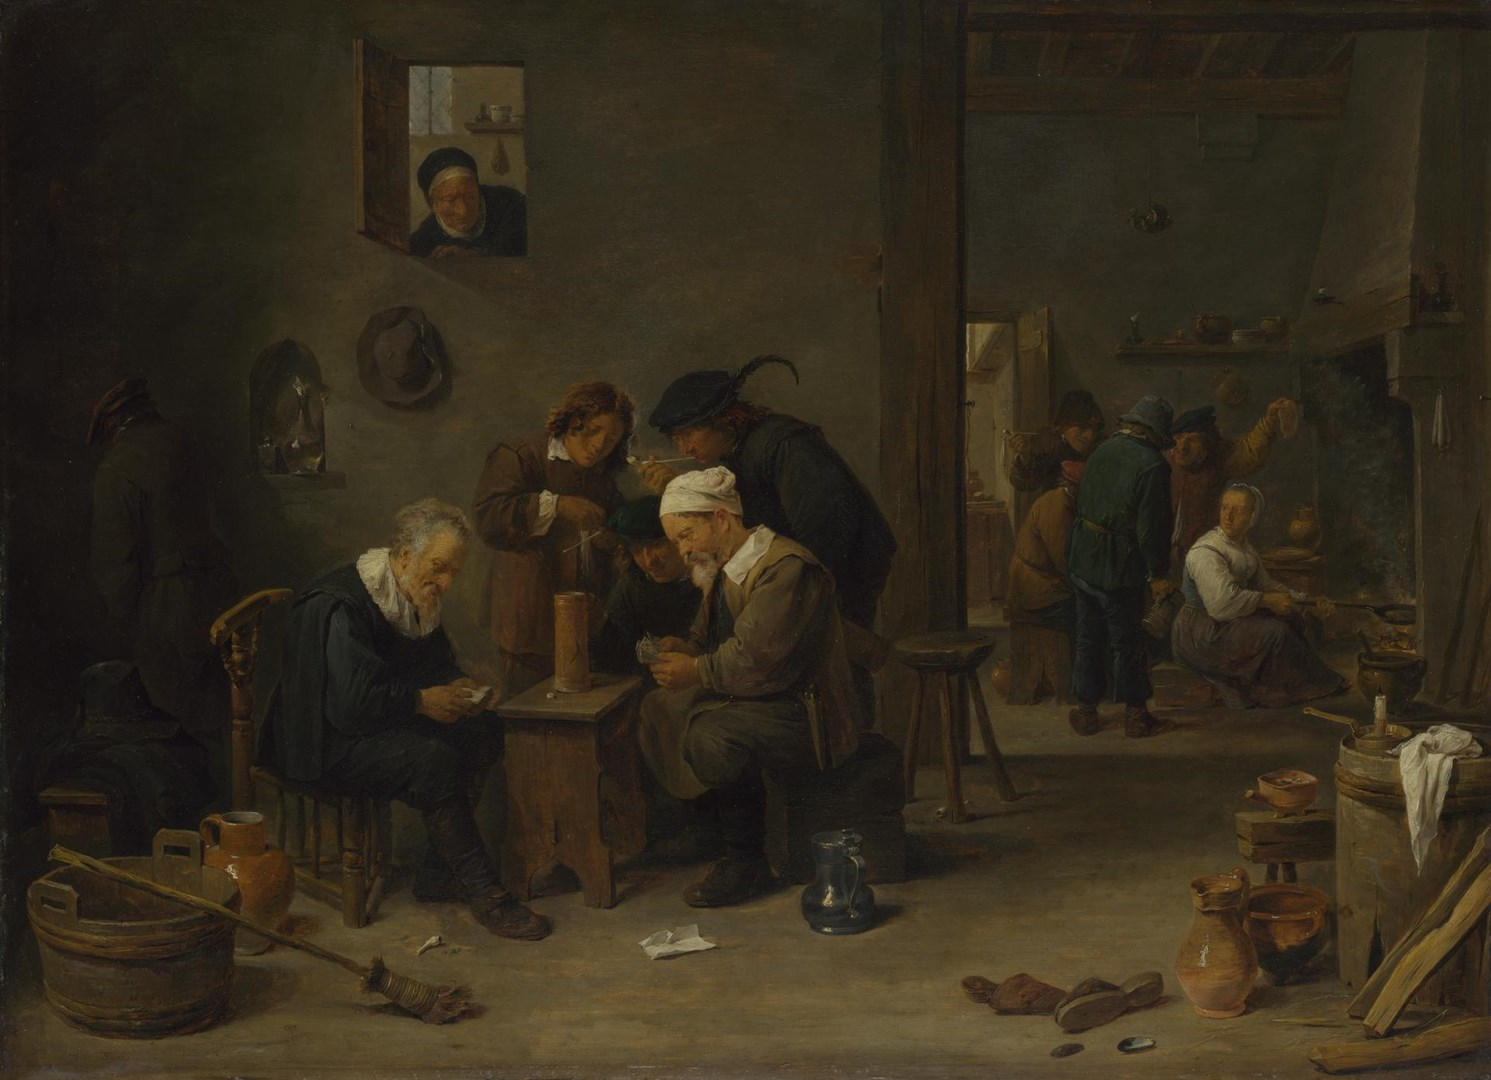 Two Men playing Cards in the Kitchen of an Inn by David Teniers the Younger